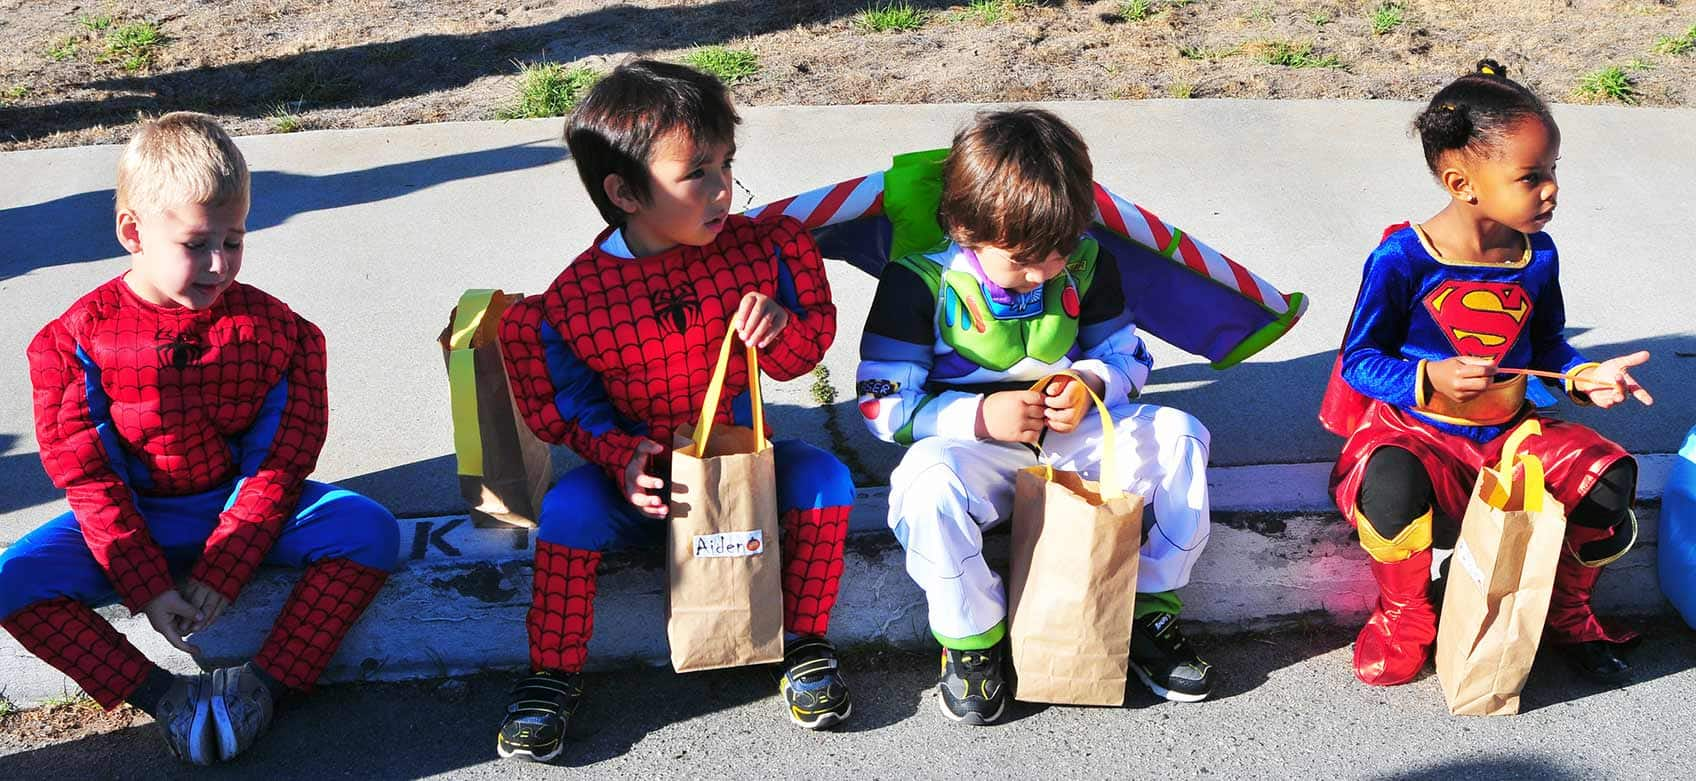 kids dressed up as superheroes to trick or treat